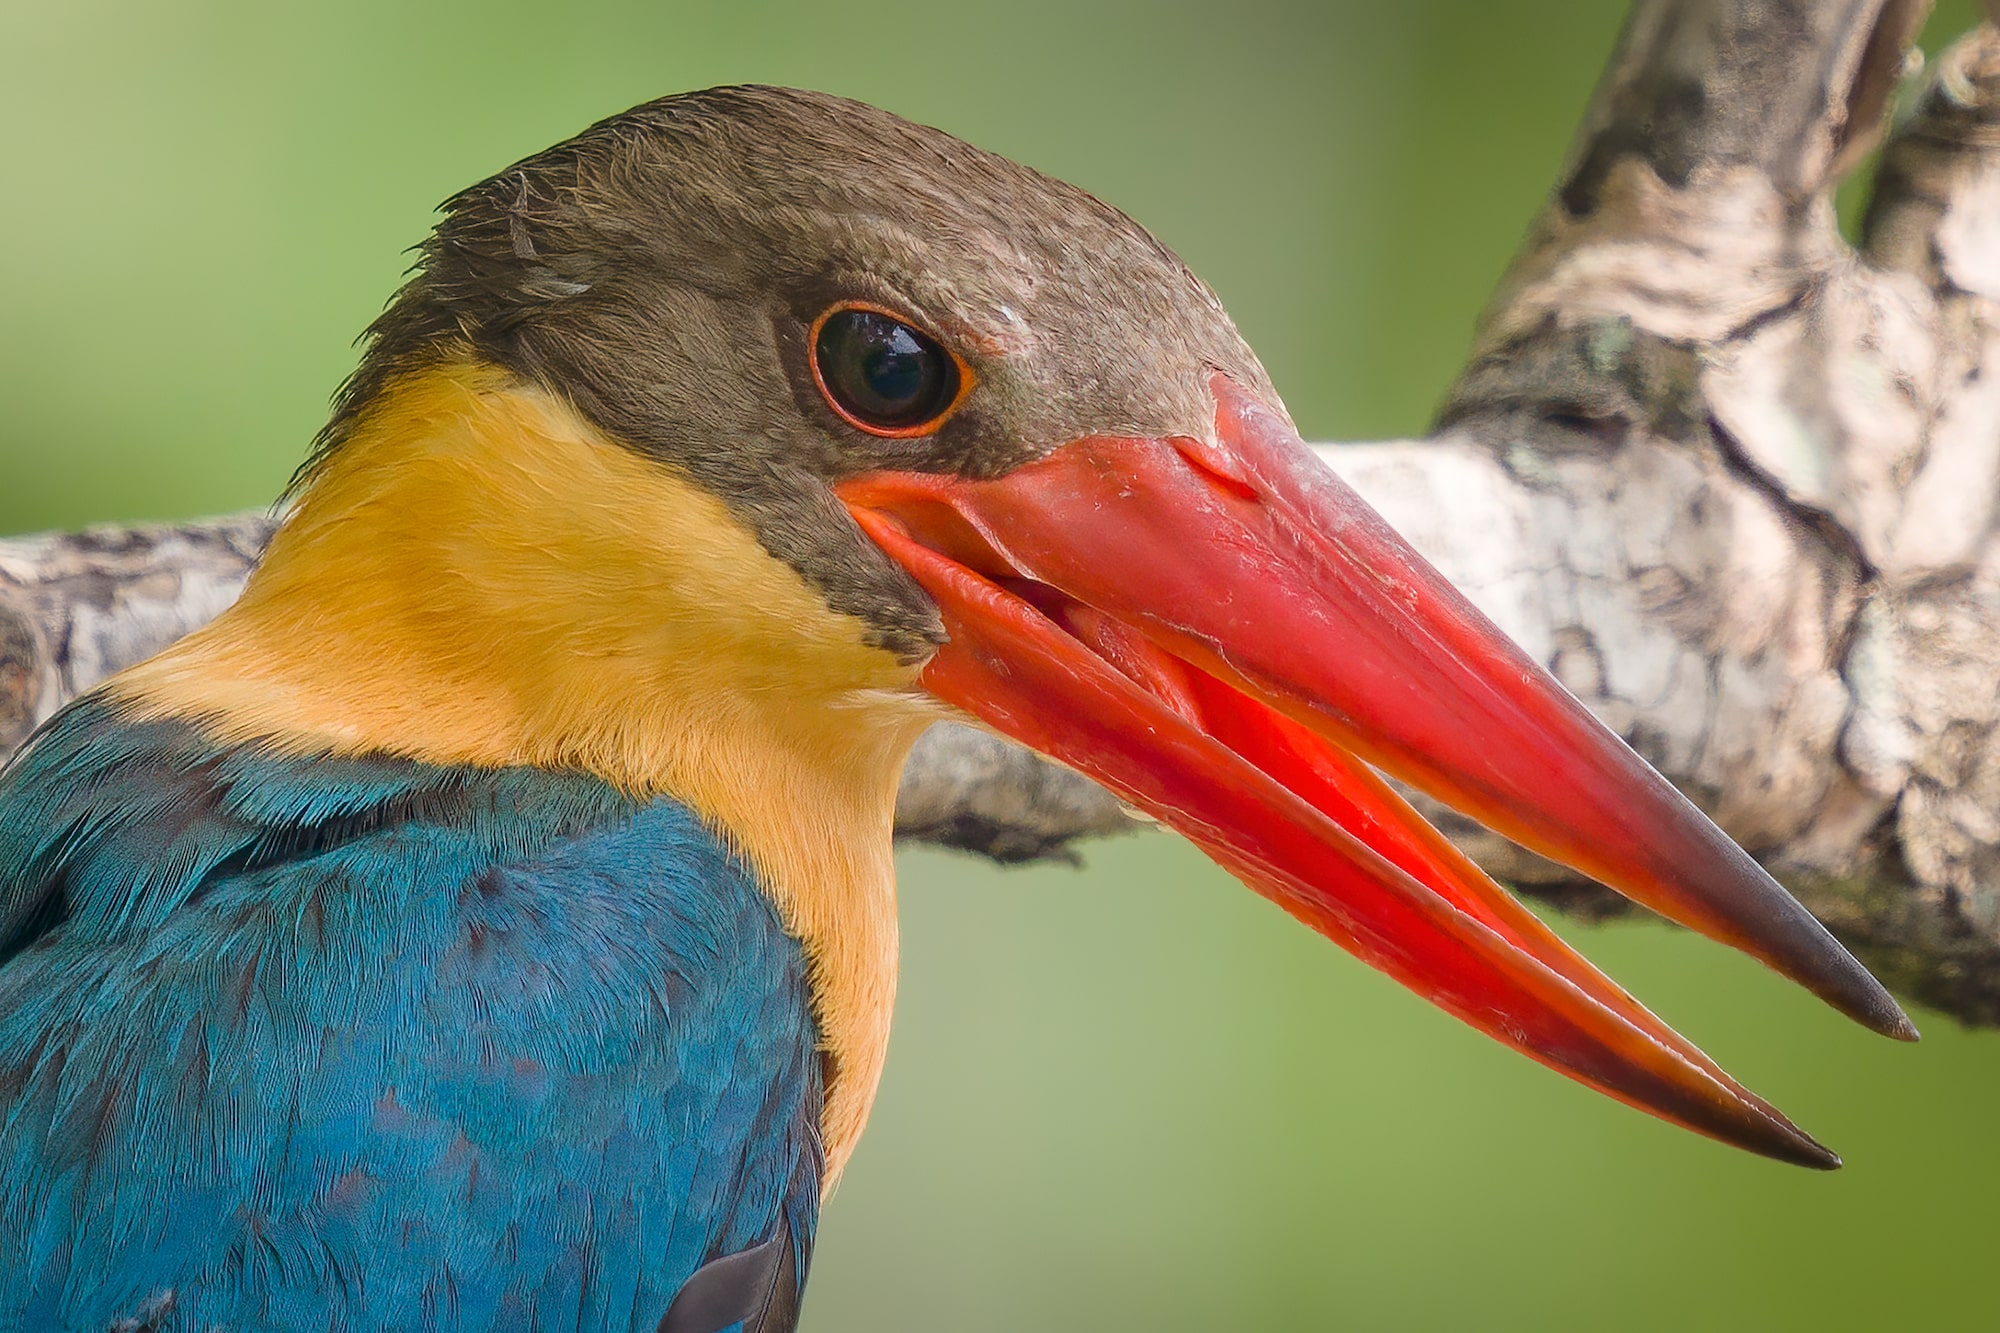 Sony Alpha 7R IV's Real-time Eye Tracking with animal eye locks on Stork-billed Kingfisher on branch.